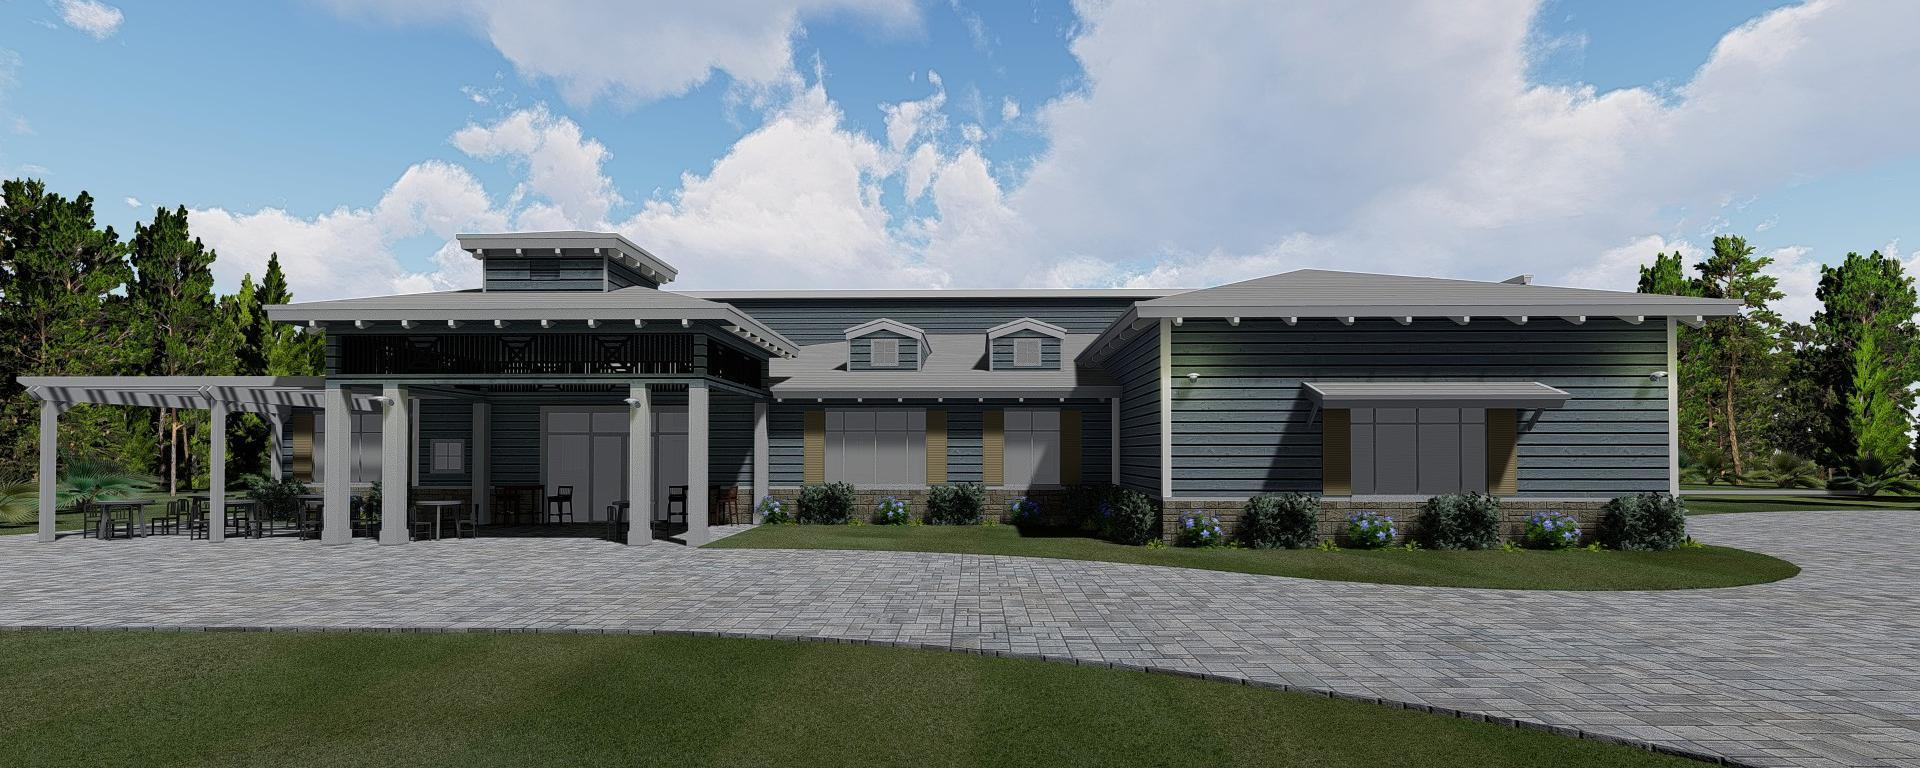 Rendering of the front view of the club house